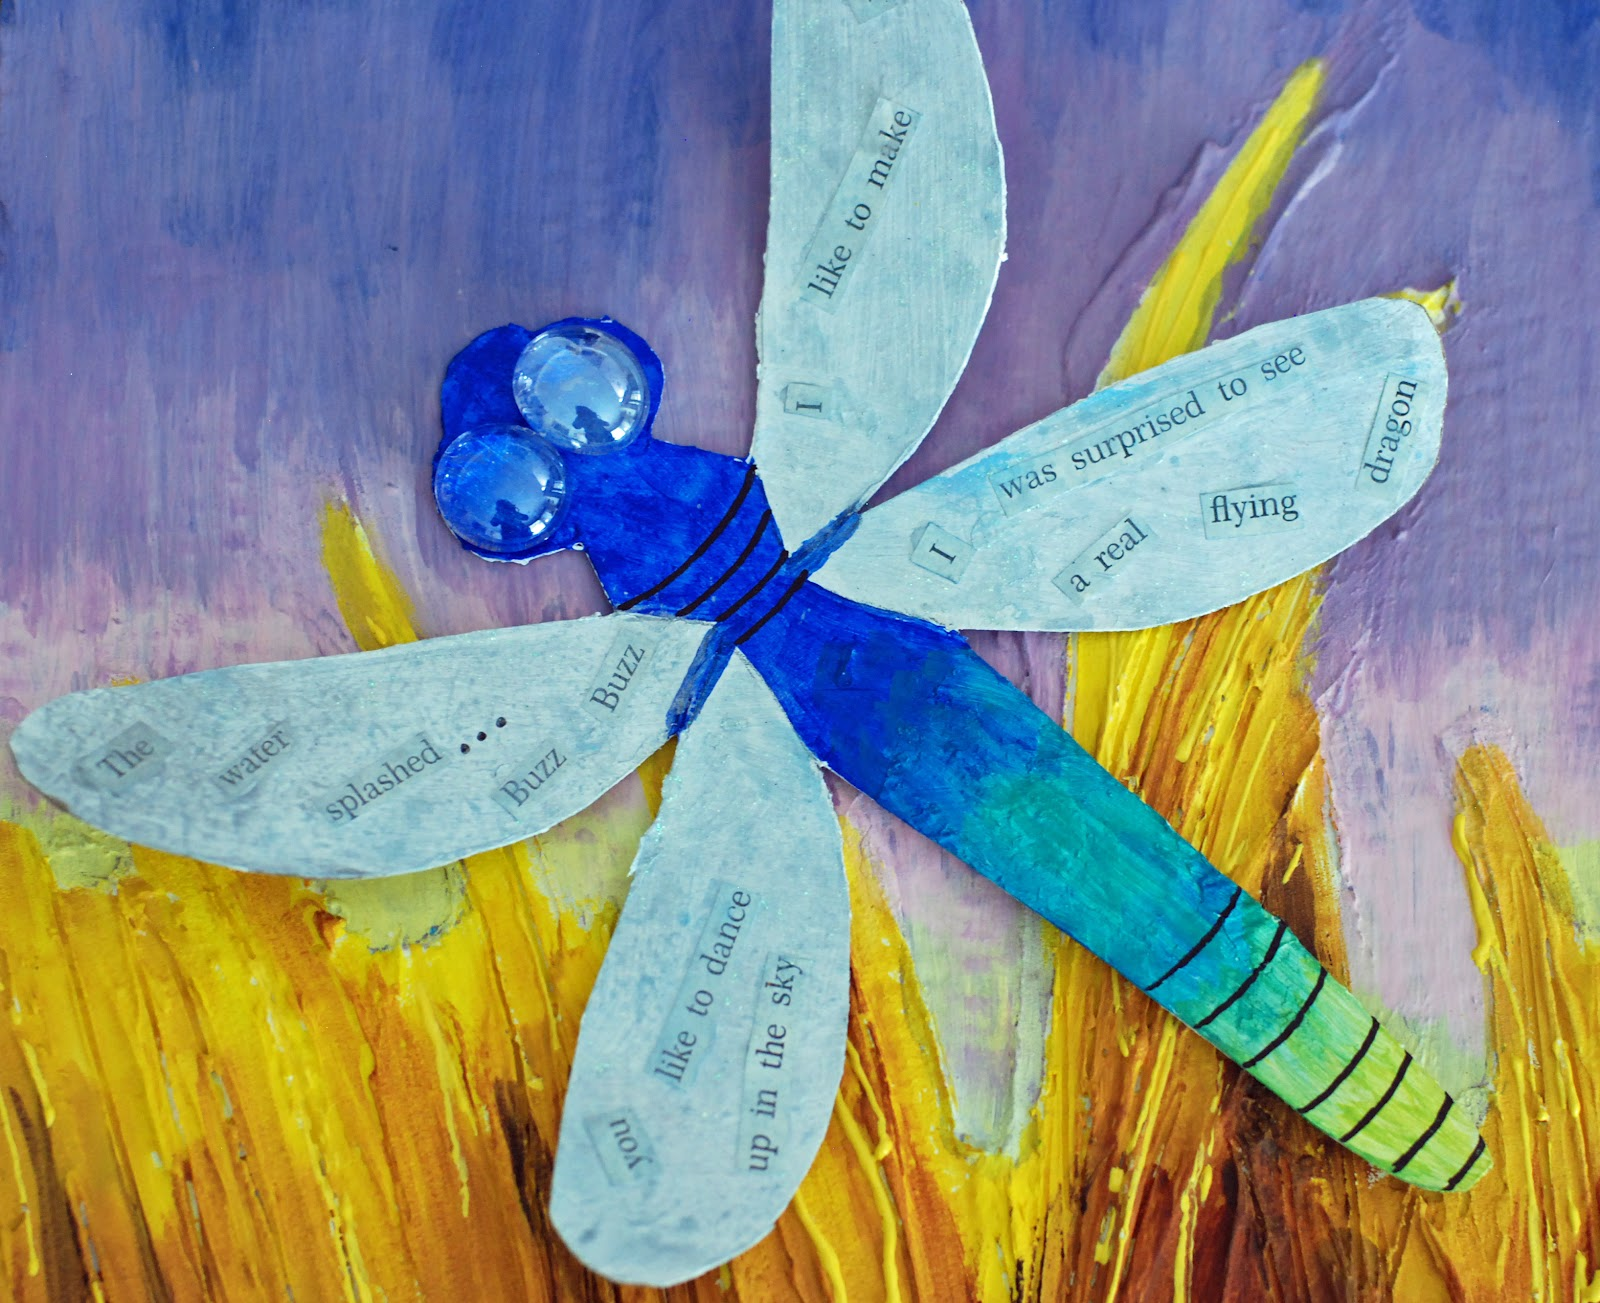 Dragonfly arts and crafts - Dragonfly Arts And Crafts 13